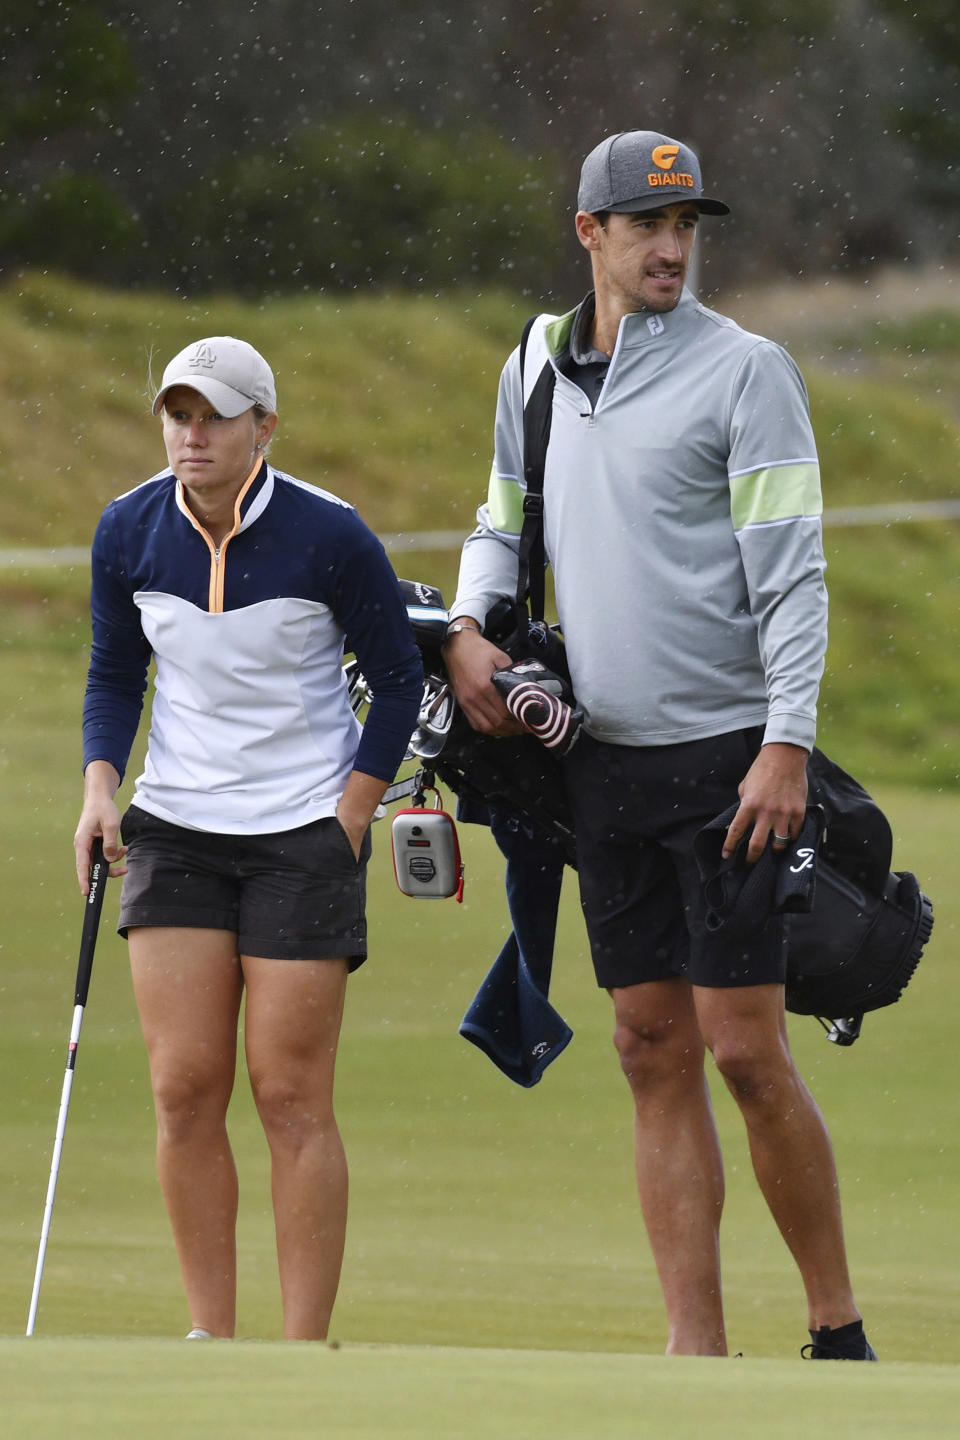 Australian cricket player Mitchell Starc, right, walks the fairway with his wife, Alyssa Healy, at the Grange Golf Club in Adelaide, Australia on Feb. 13, 2019. Starc hasn't picked up a cricket bat or ball in two months, and isn't exactly salivating at the prospect of going back to work. (David Mariuz/AAP Image via AP)